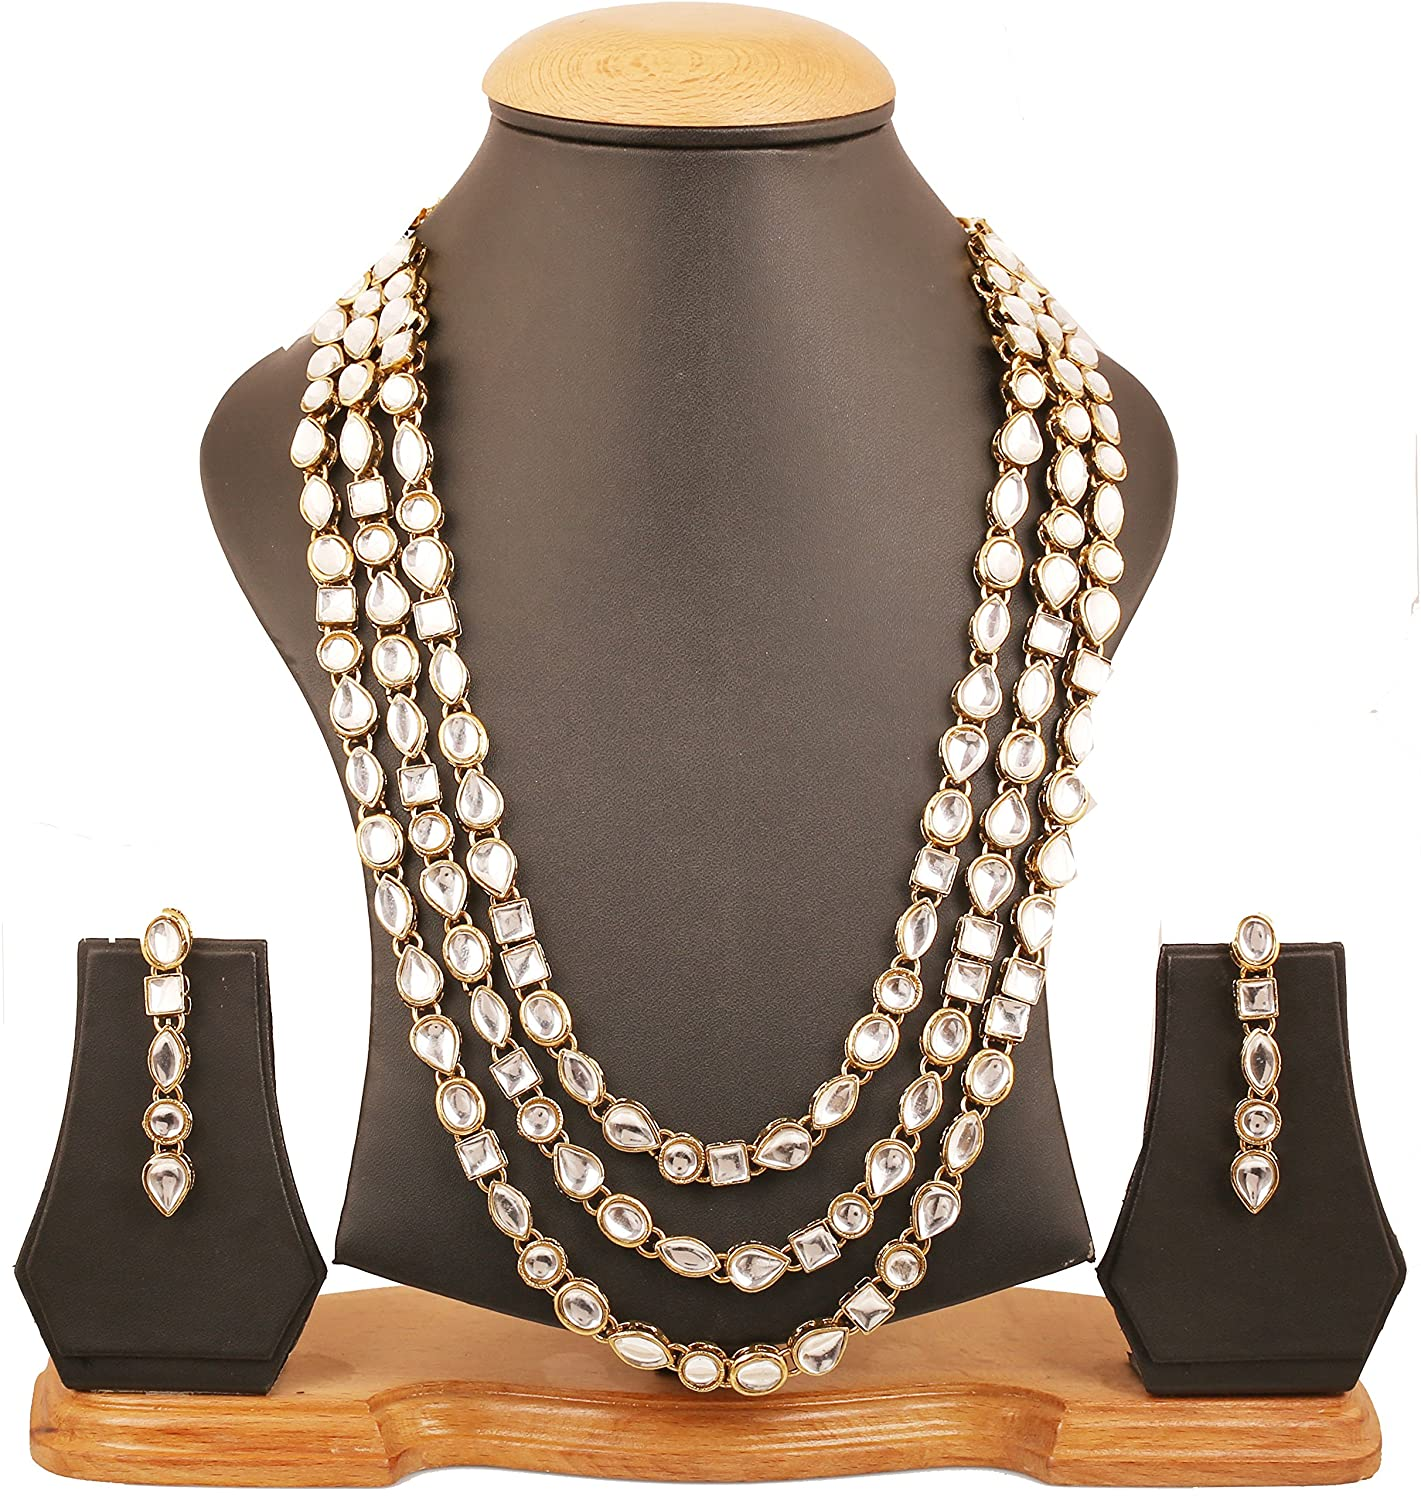 Touchstone Contemporary Kundan Collection Indian Bollywood Classic Elite Look Royal Mughal Craftsmanship Triple Layer Long Kundan polki Look Bridal Designer Jewelry Necklace Set for Women in Gold